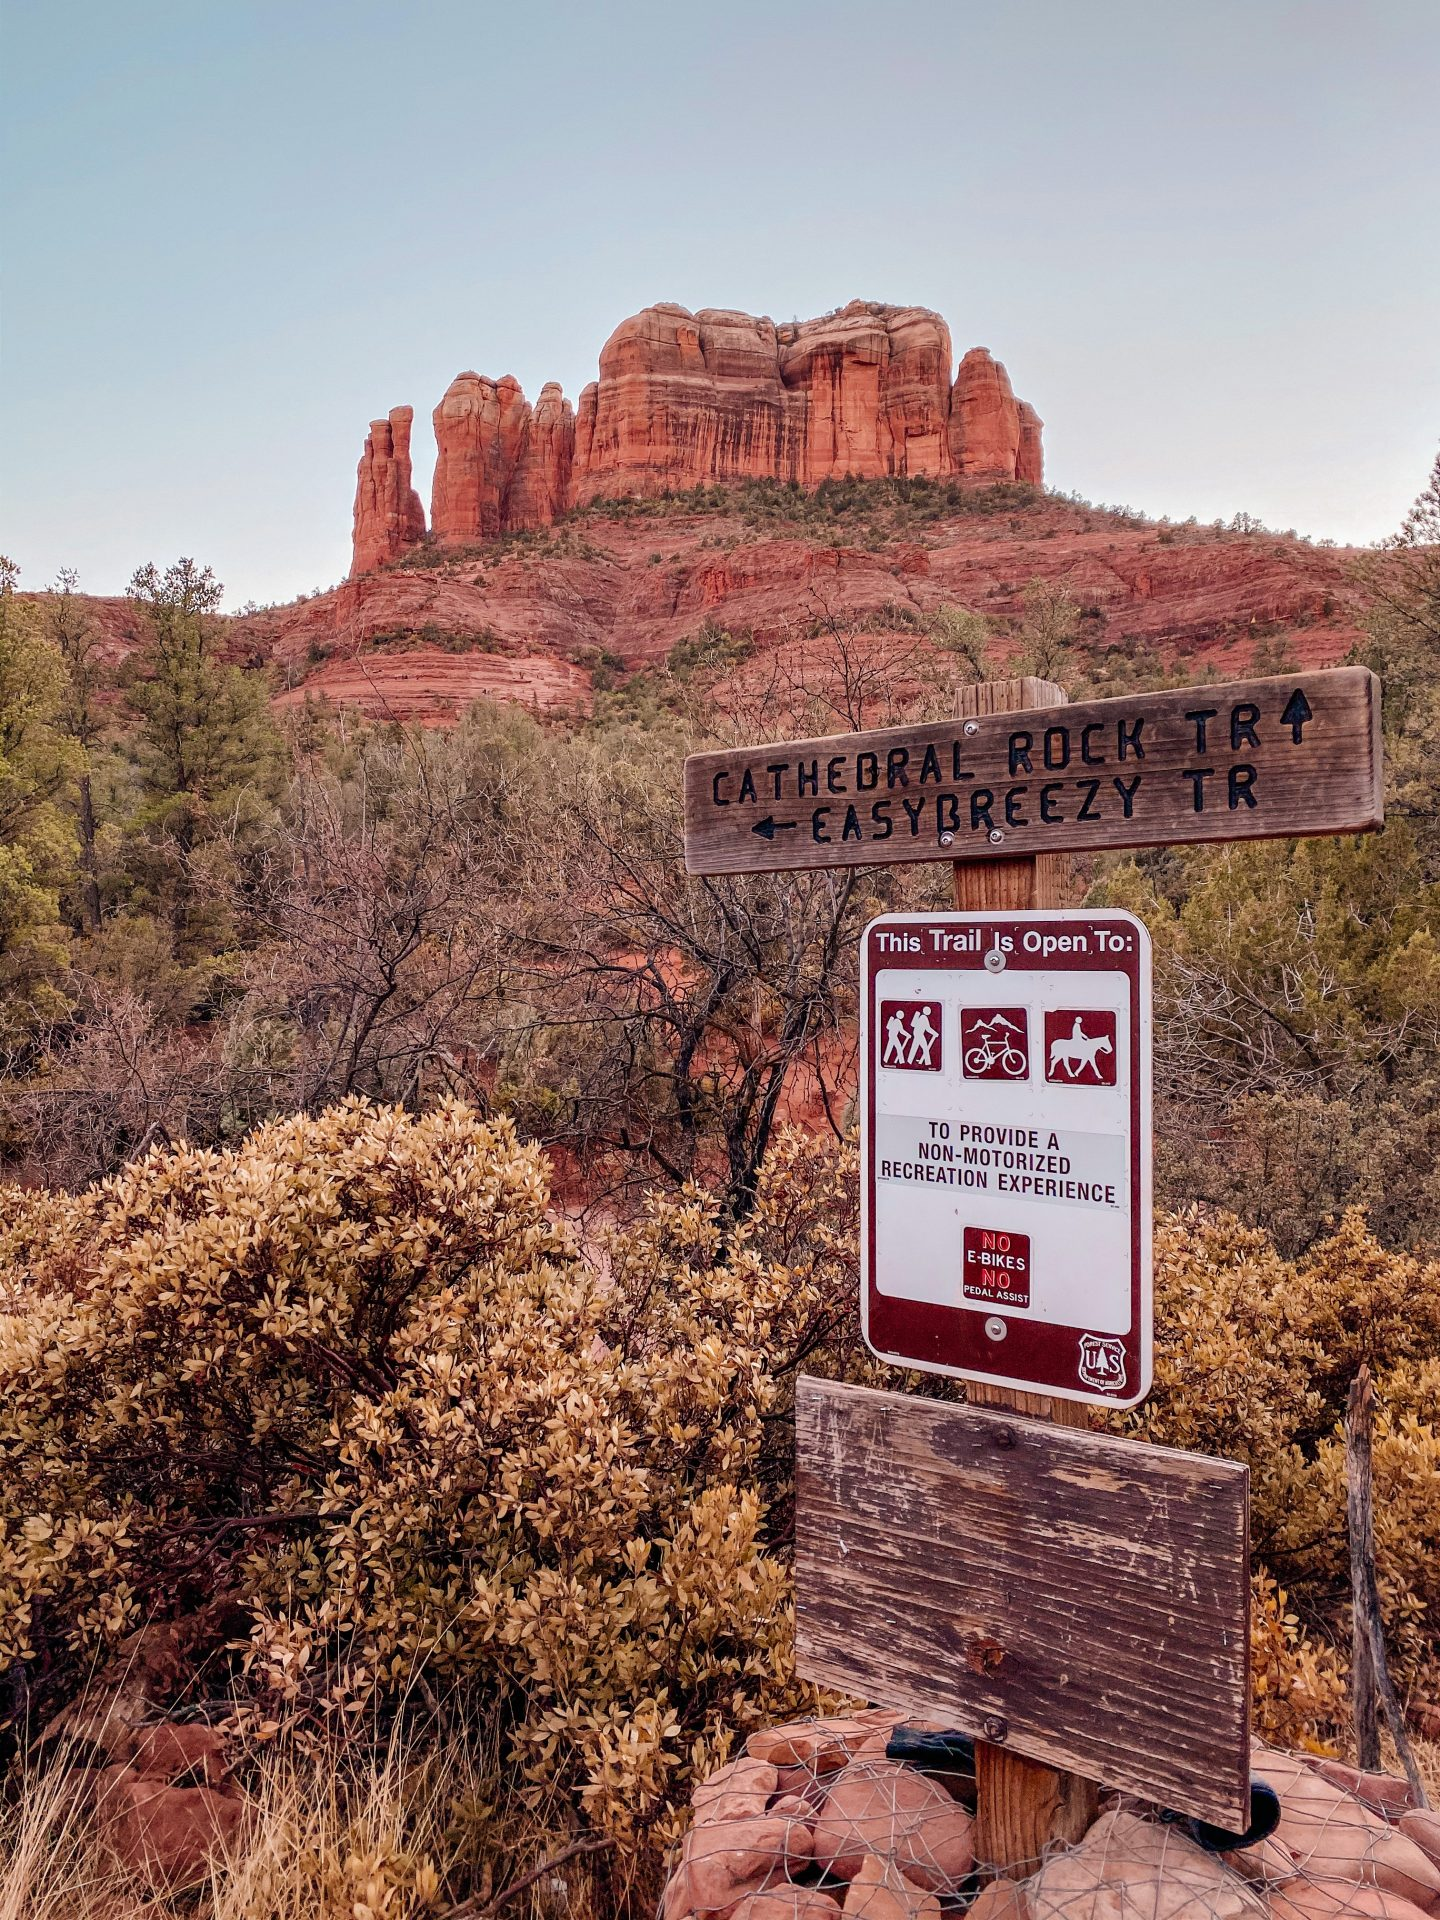 View of the hiking trailhead signs stating Cathedral Rock. Cathedral Rock red rock formation in the background.